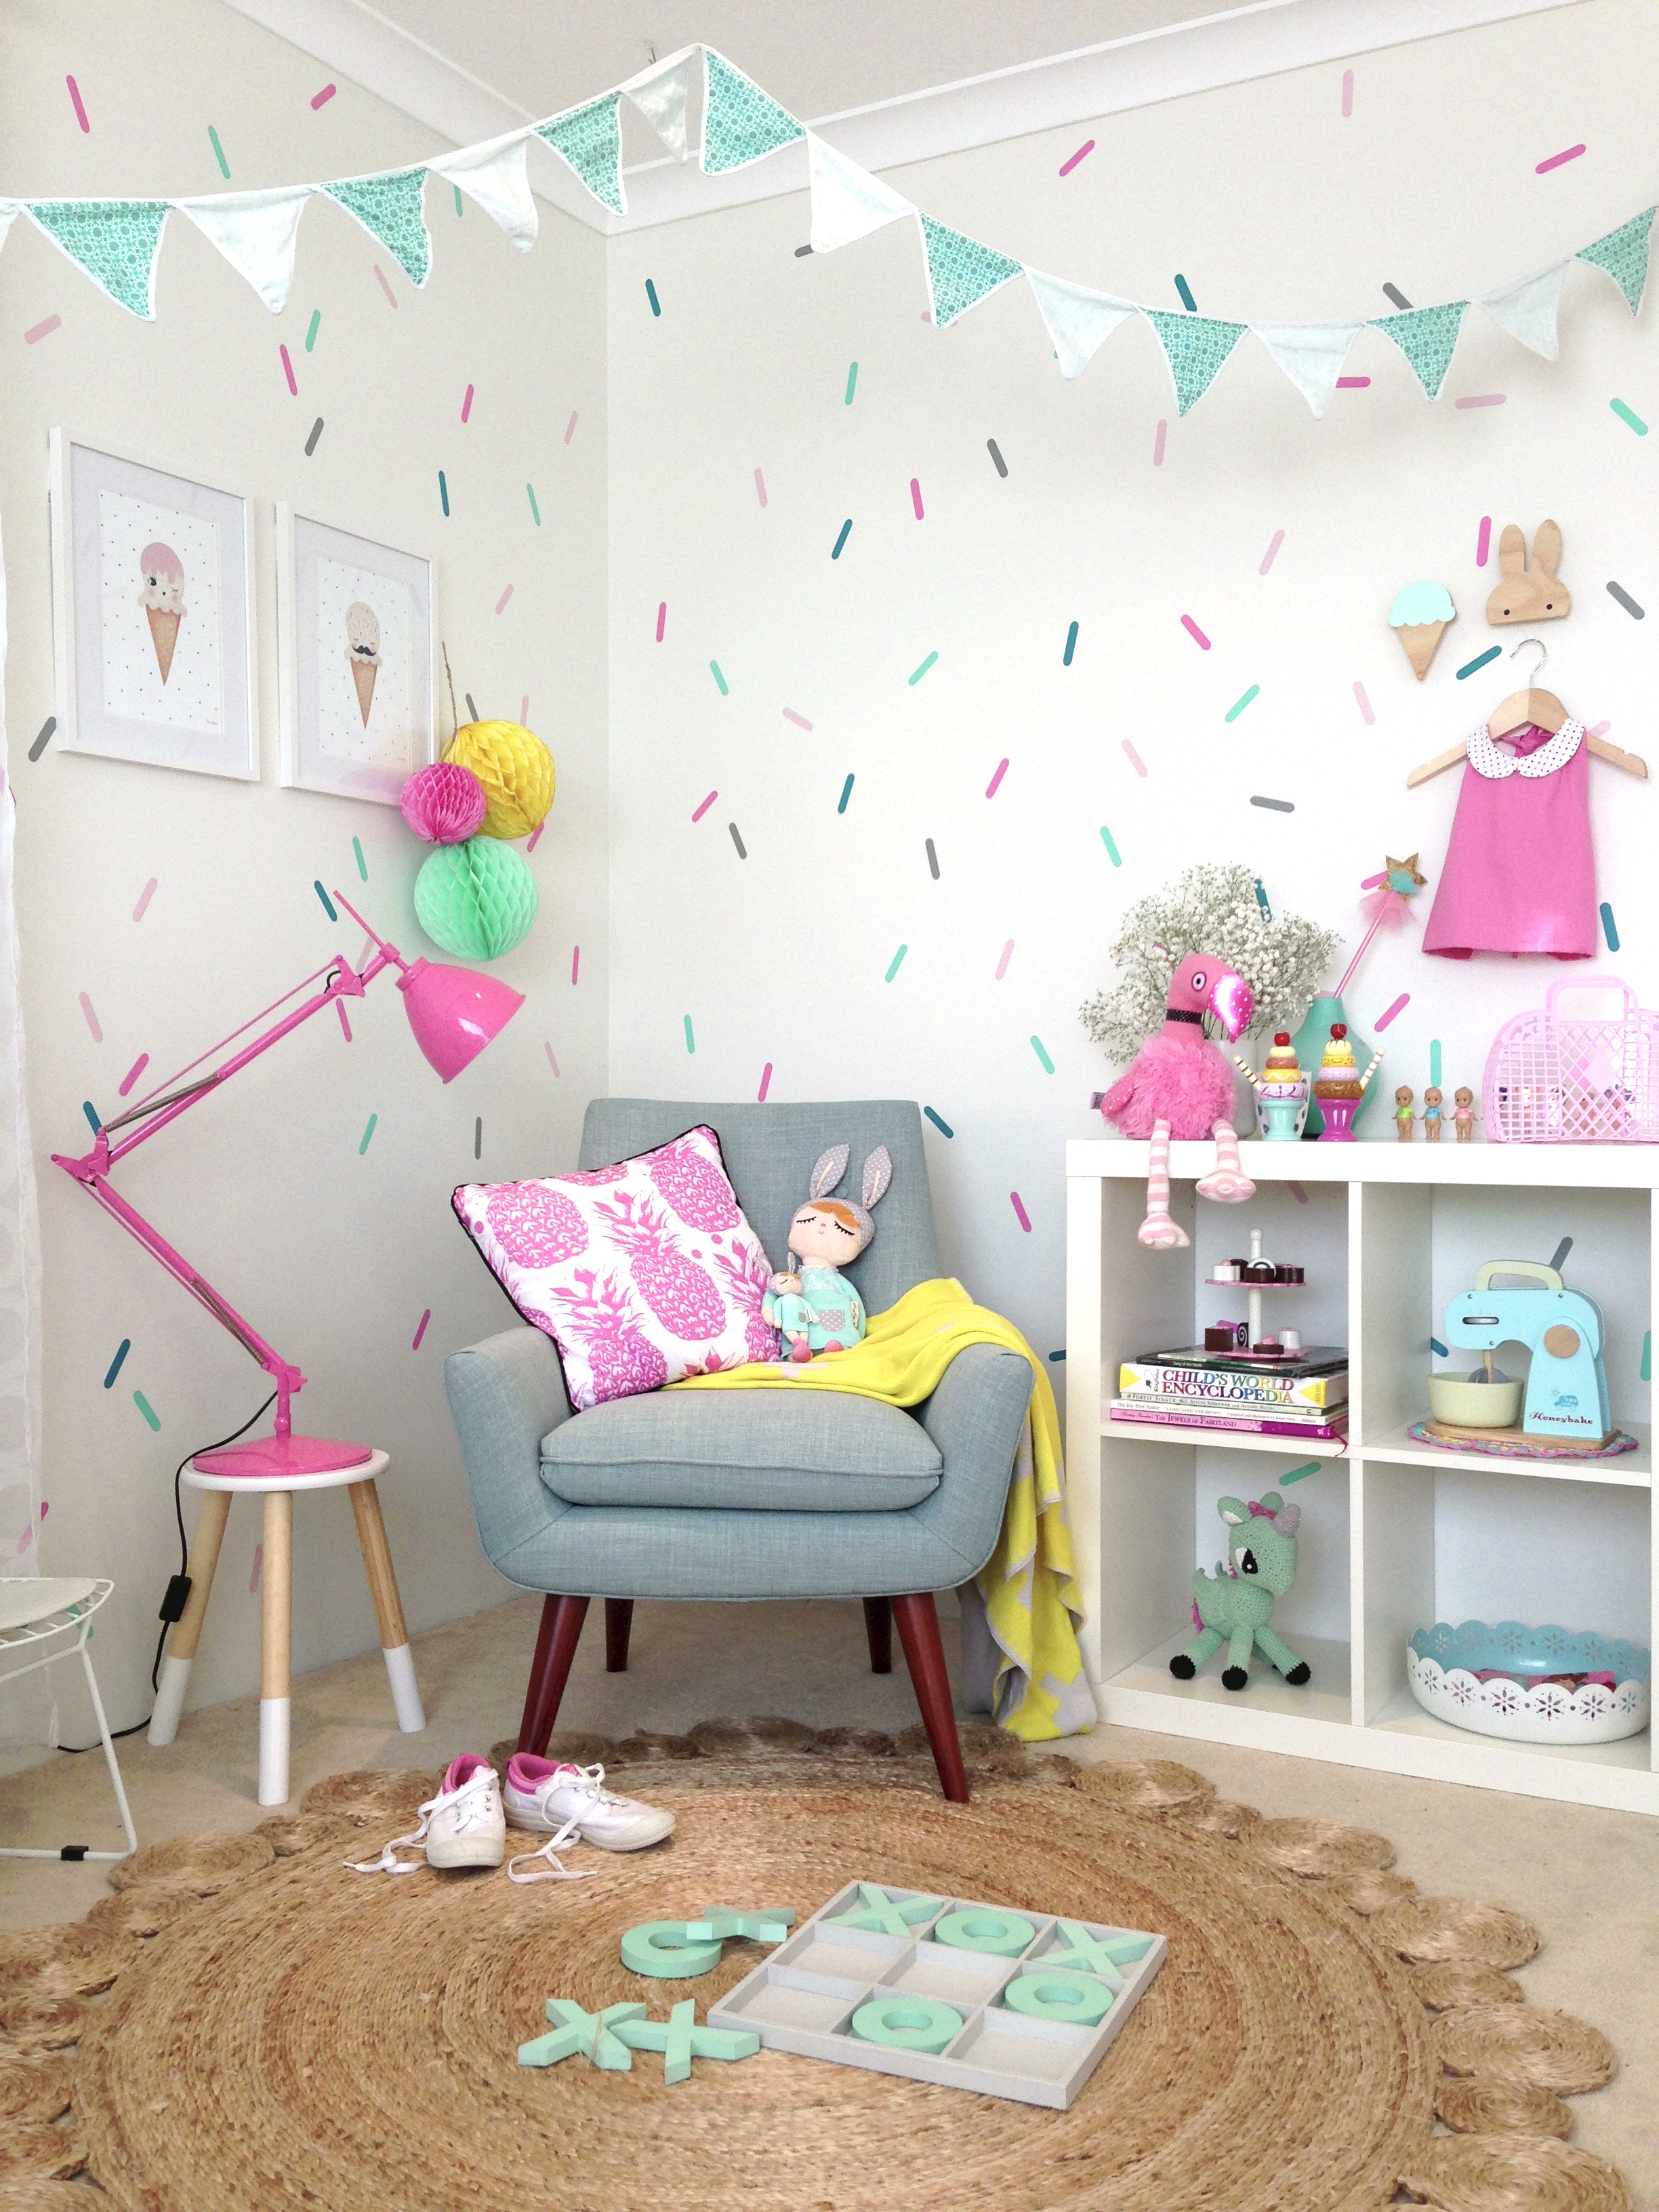 Decals tips for applying decals in an interior space with ease - Childrens bedroom wall colours ...